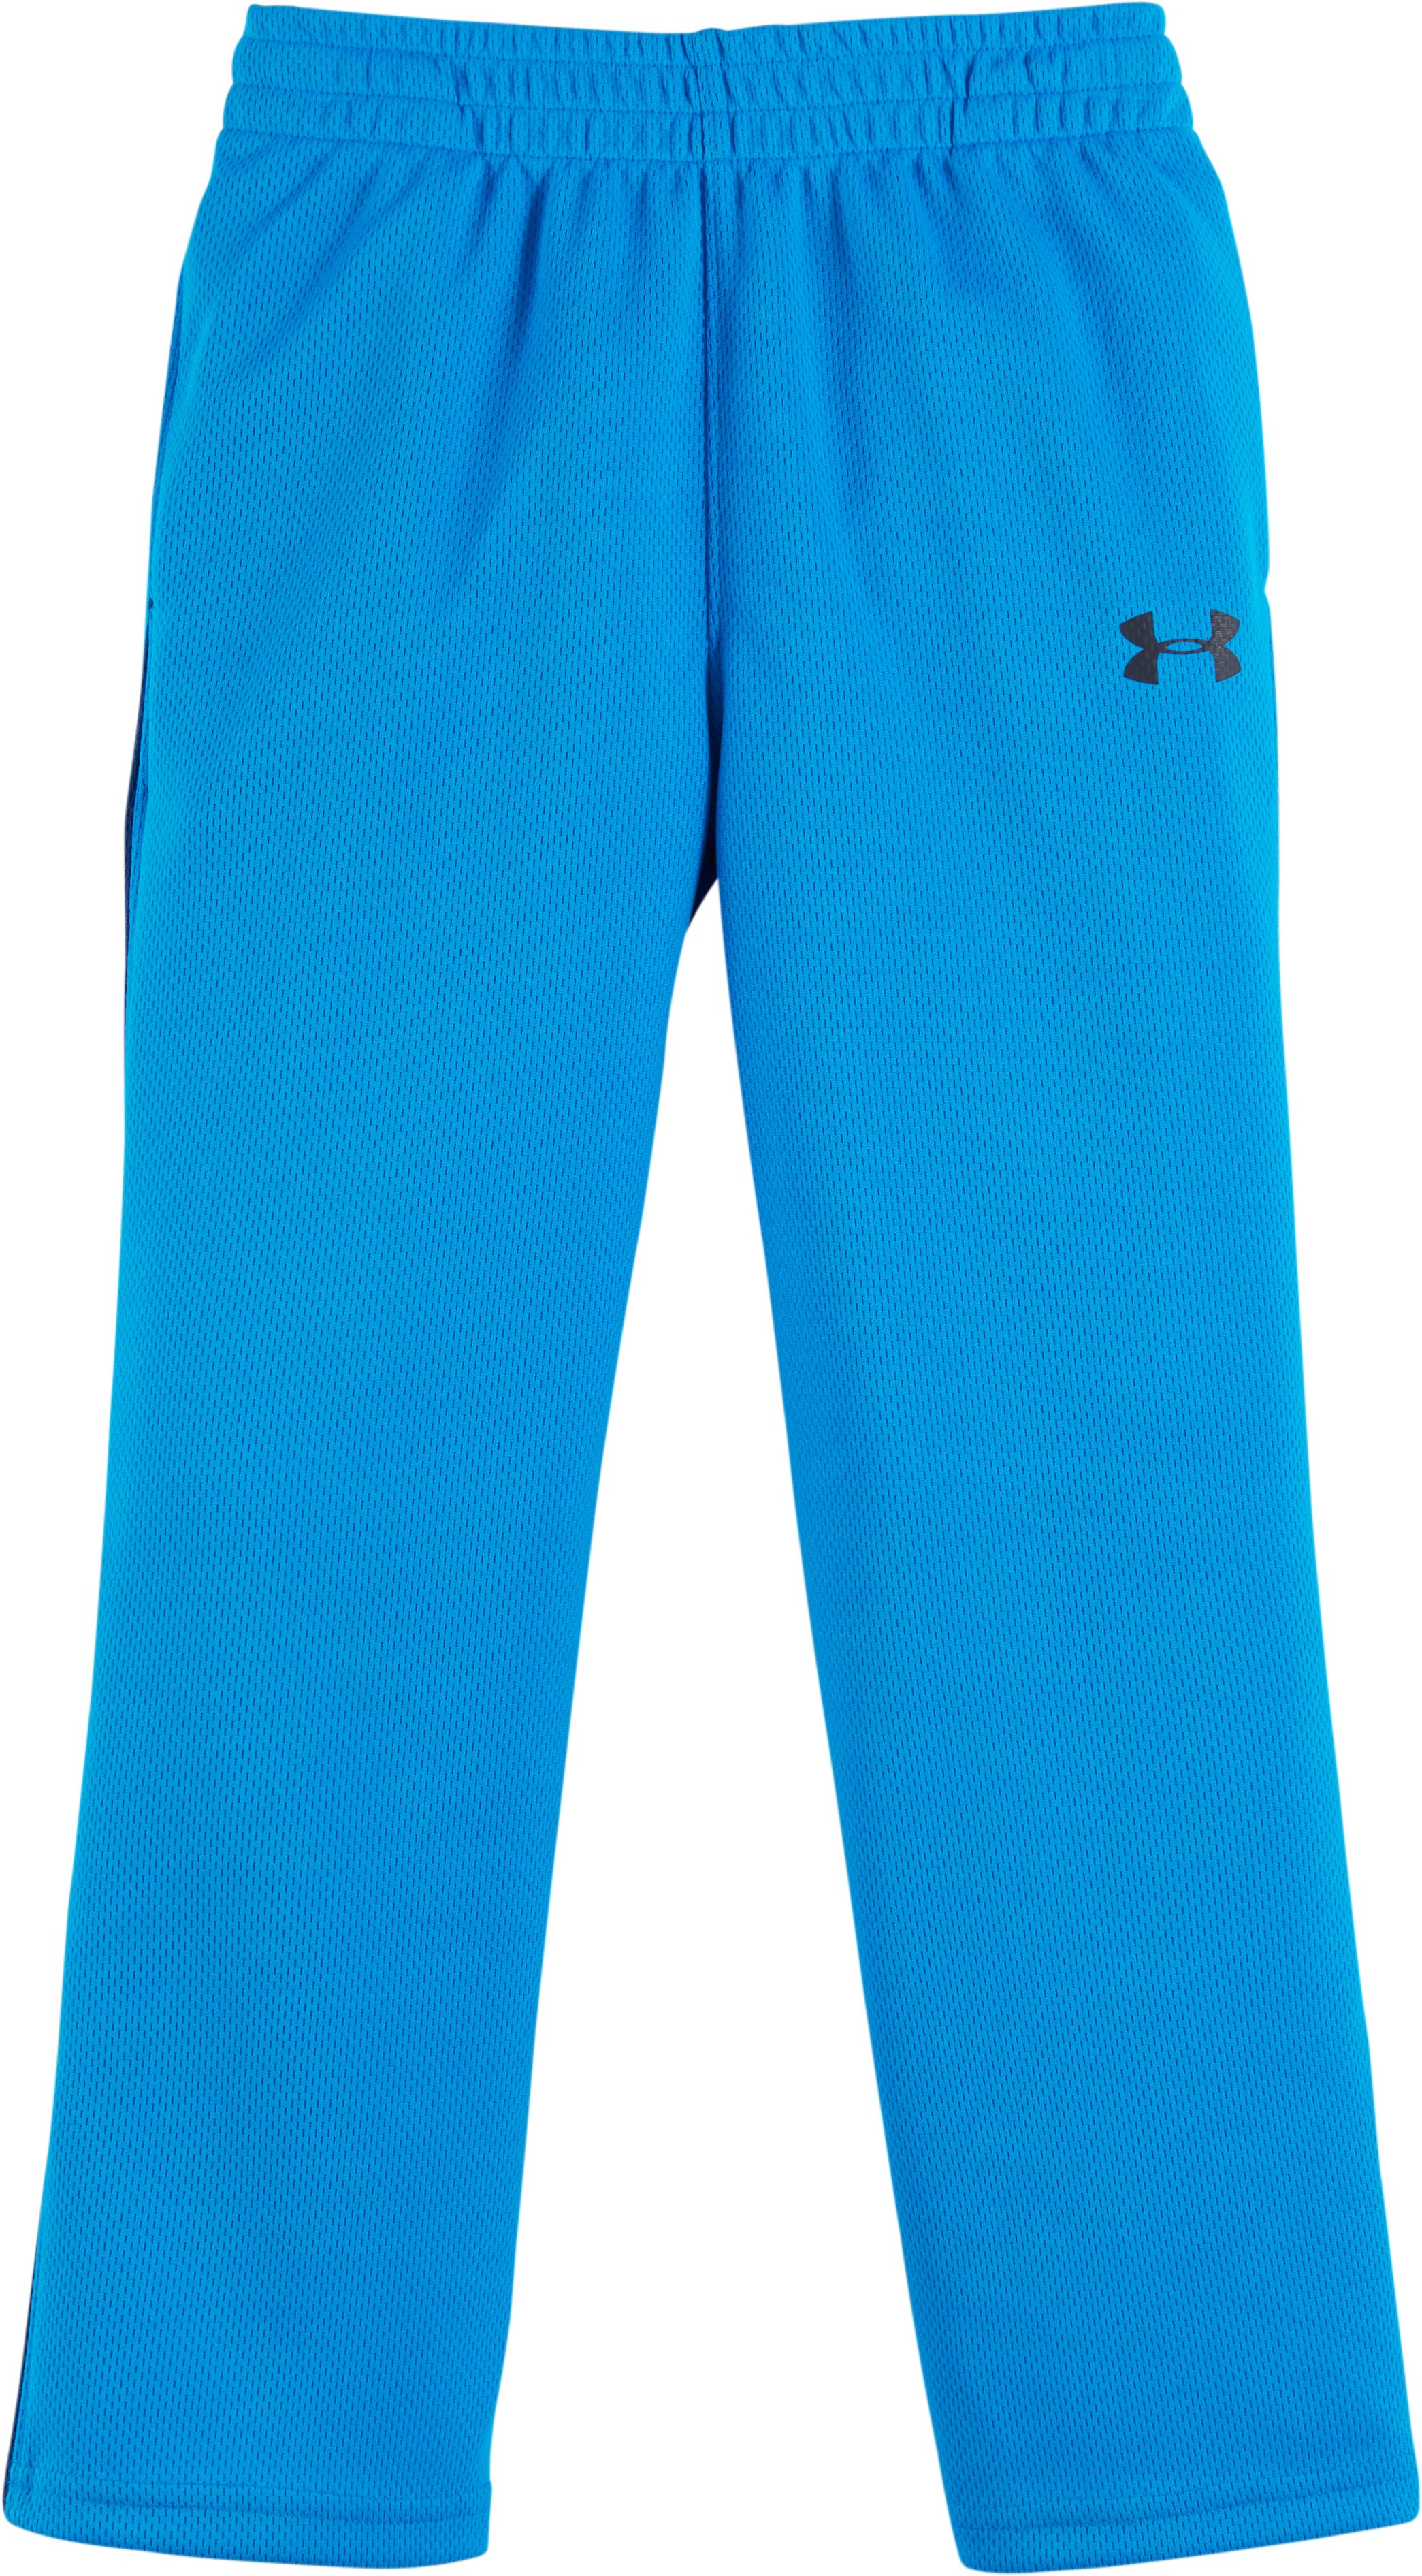 Boys' Toddler UA Midweight Champ Warm-Up Pants, BRILLIANT BLUE, Laydown